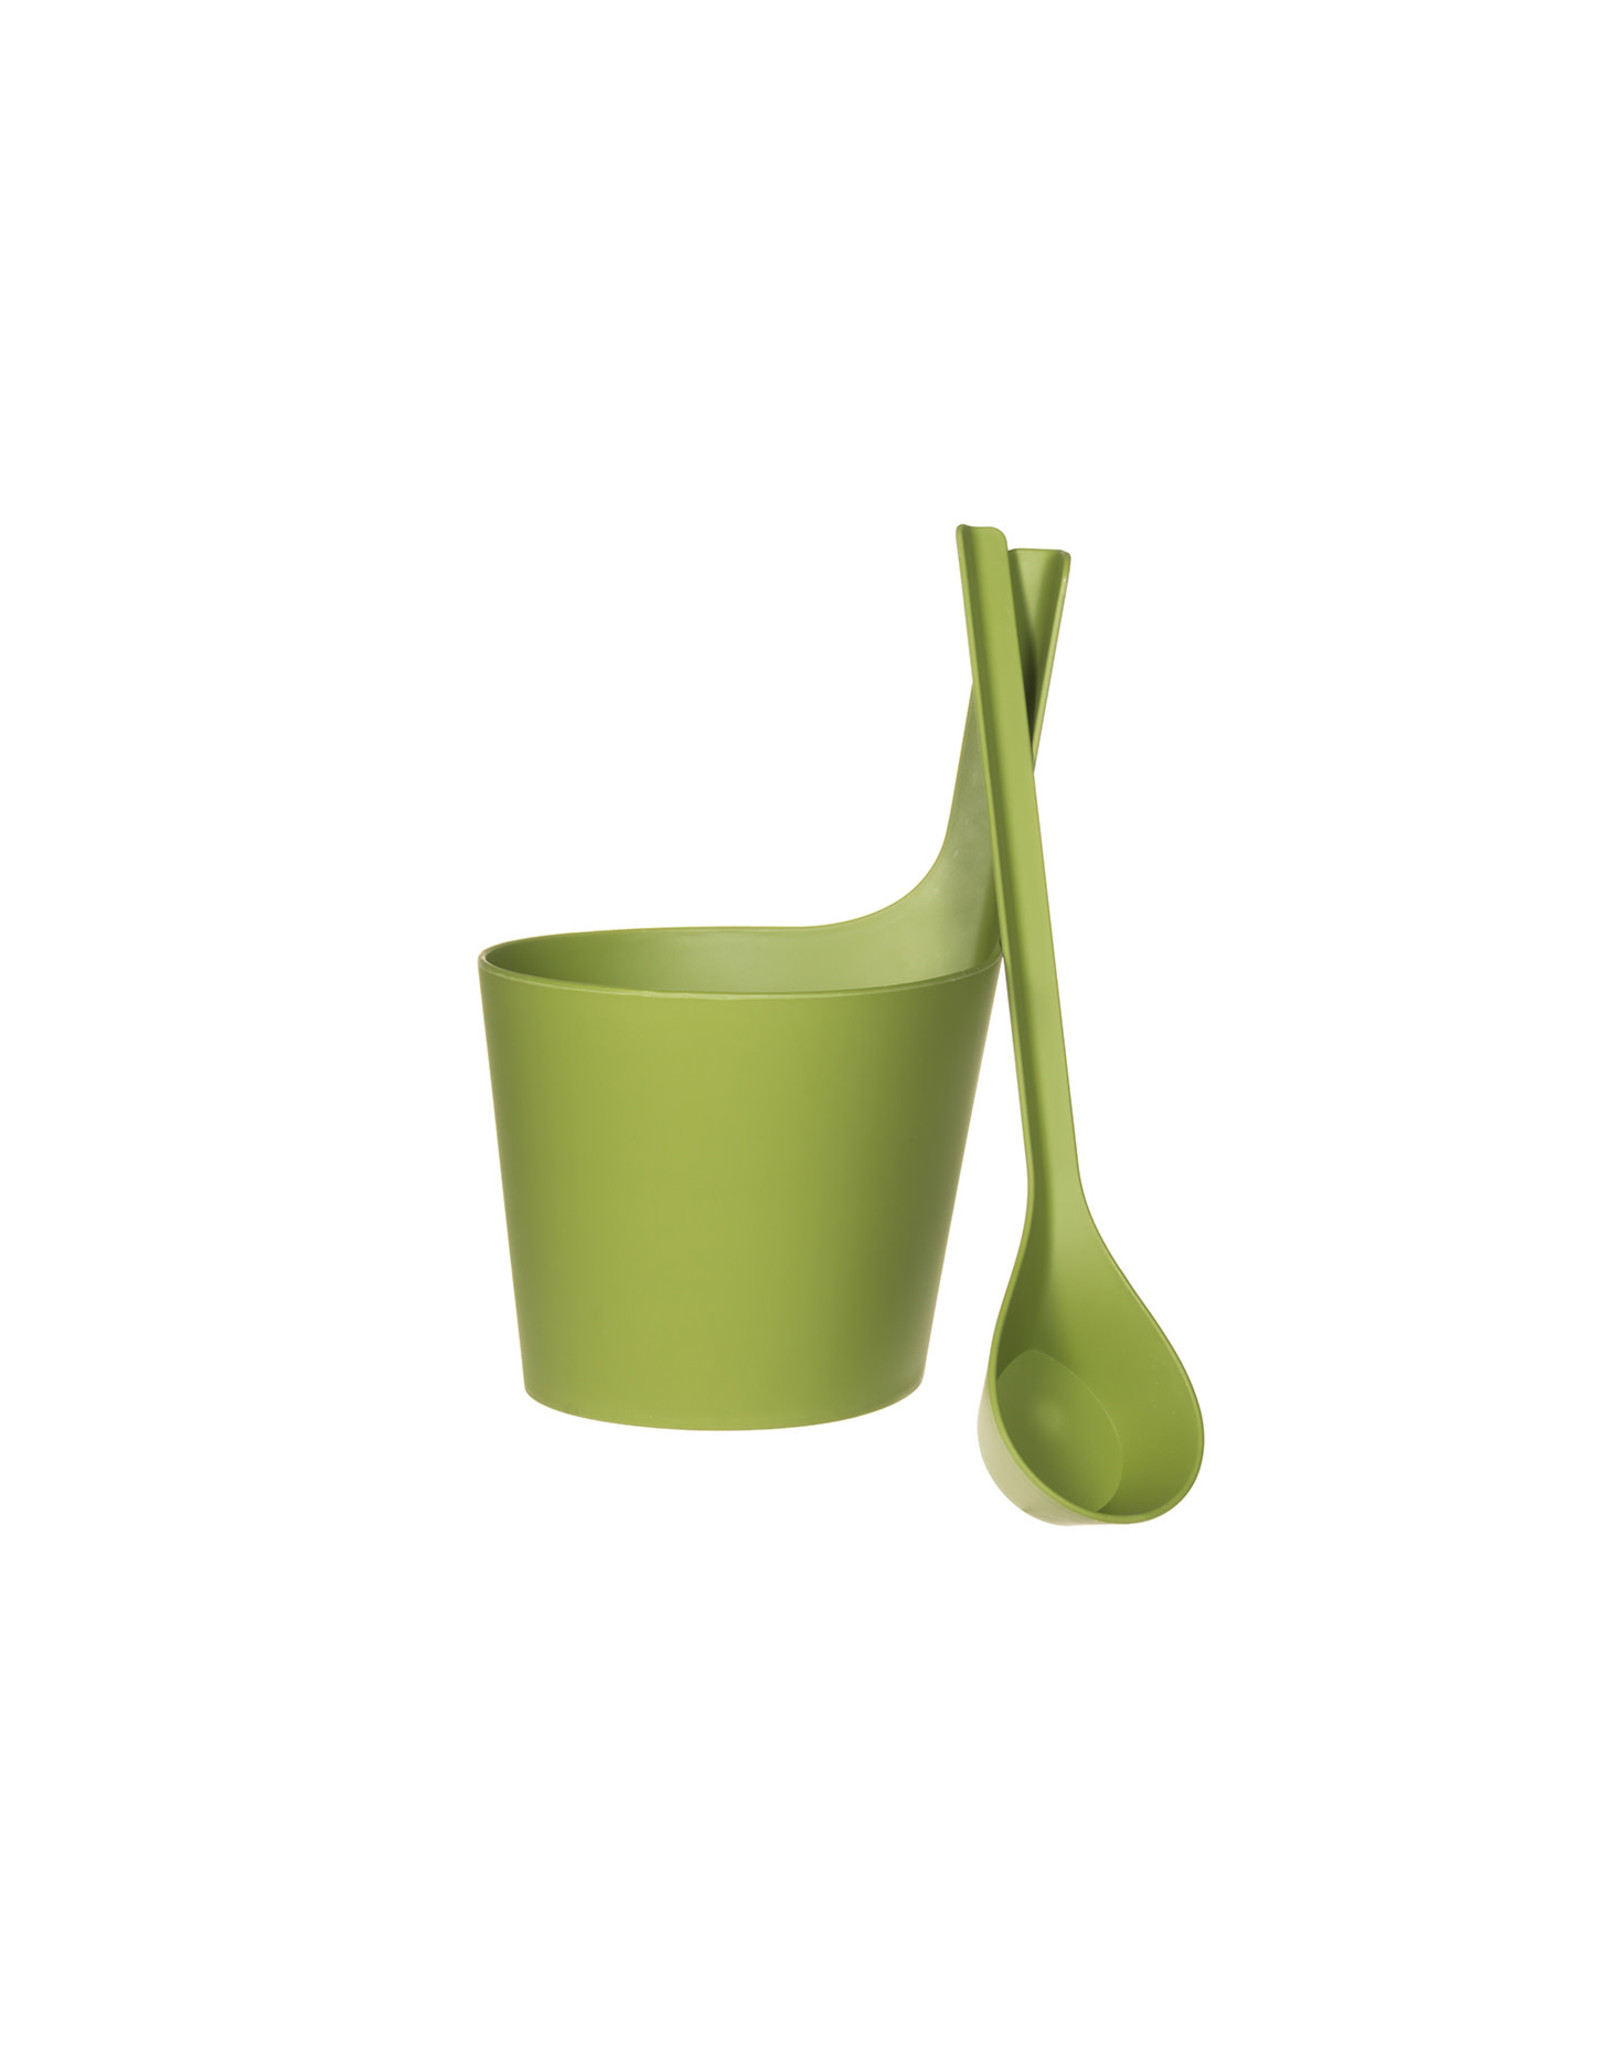 Rento Rento Pisara Bucket and Ladle